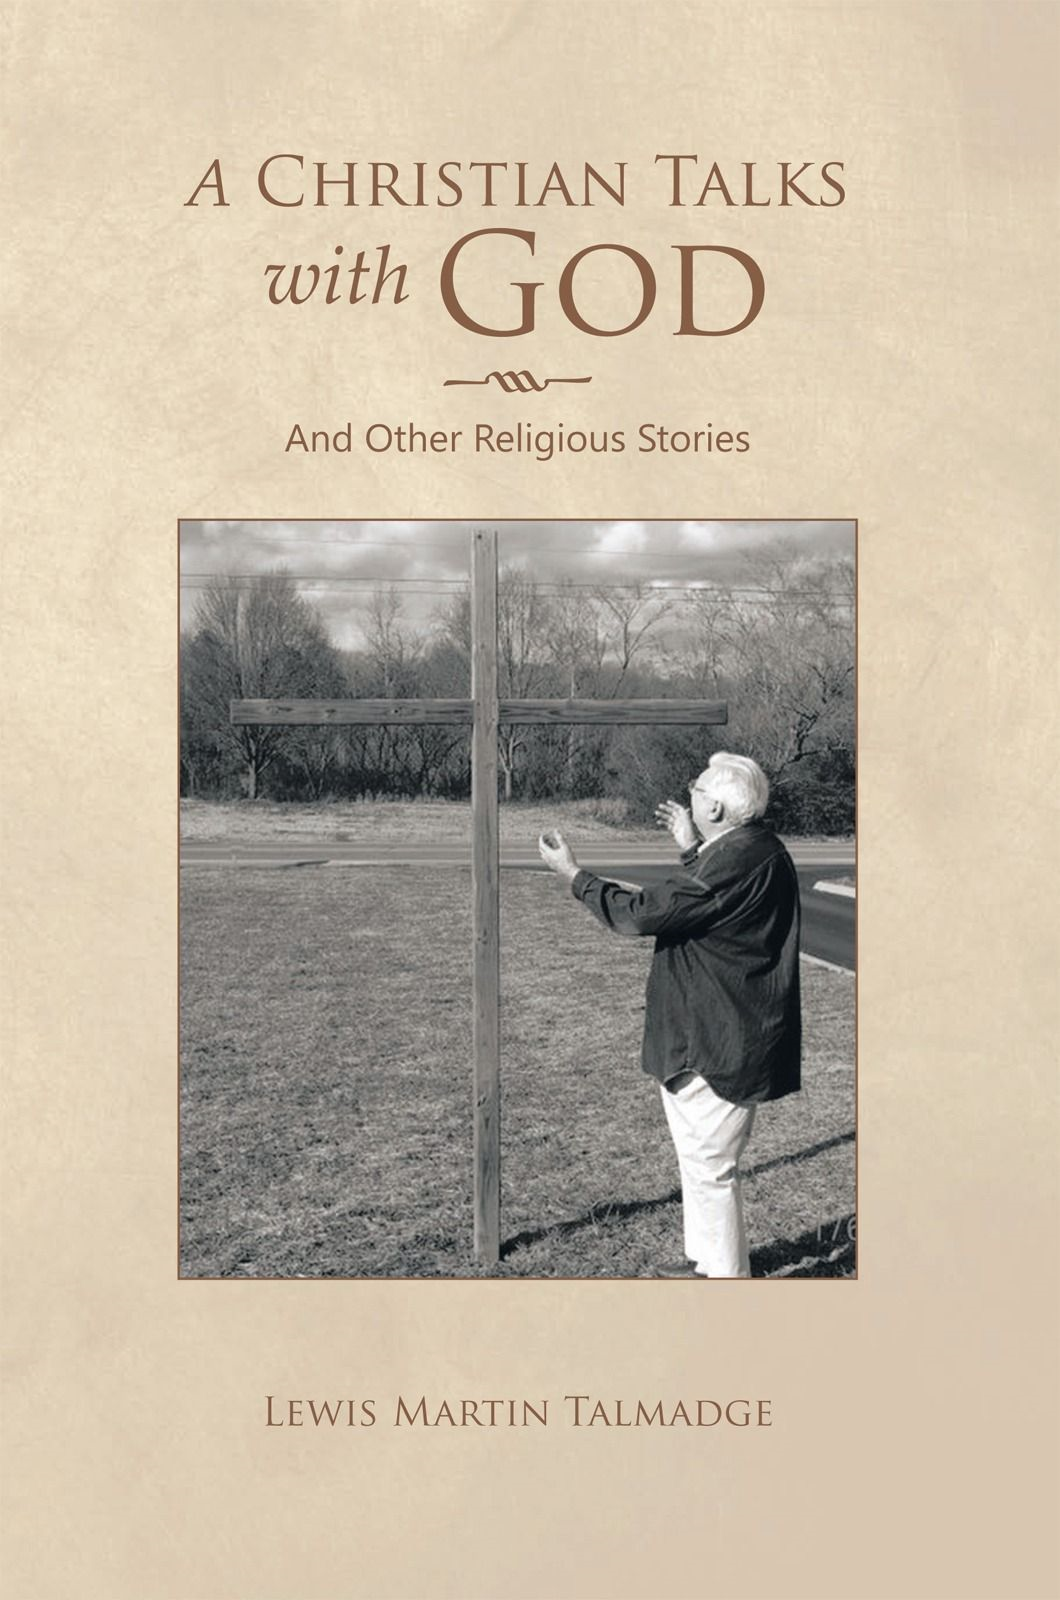 A Christian Talks with God By: Lewis Martin Talmadge